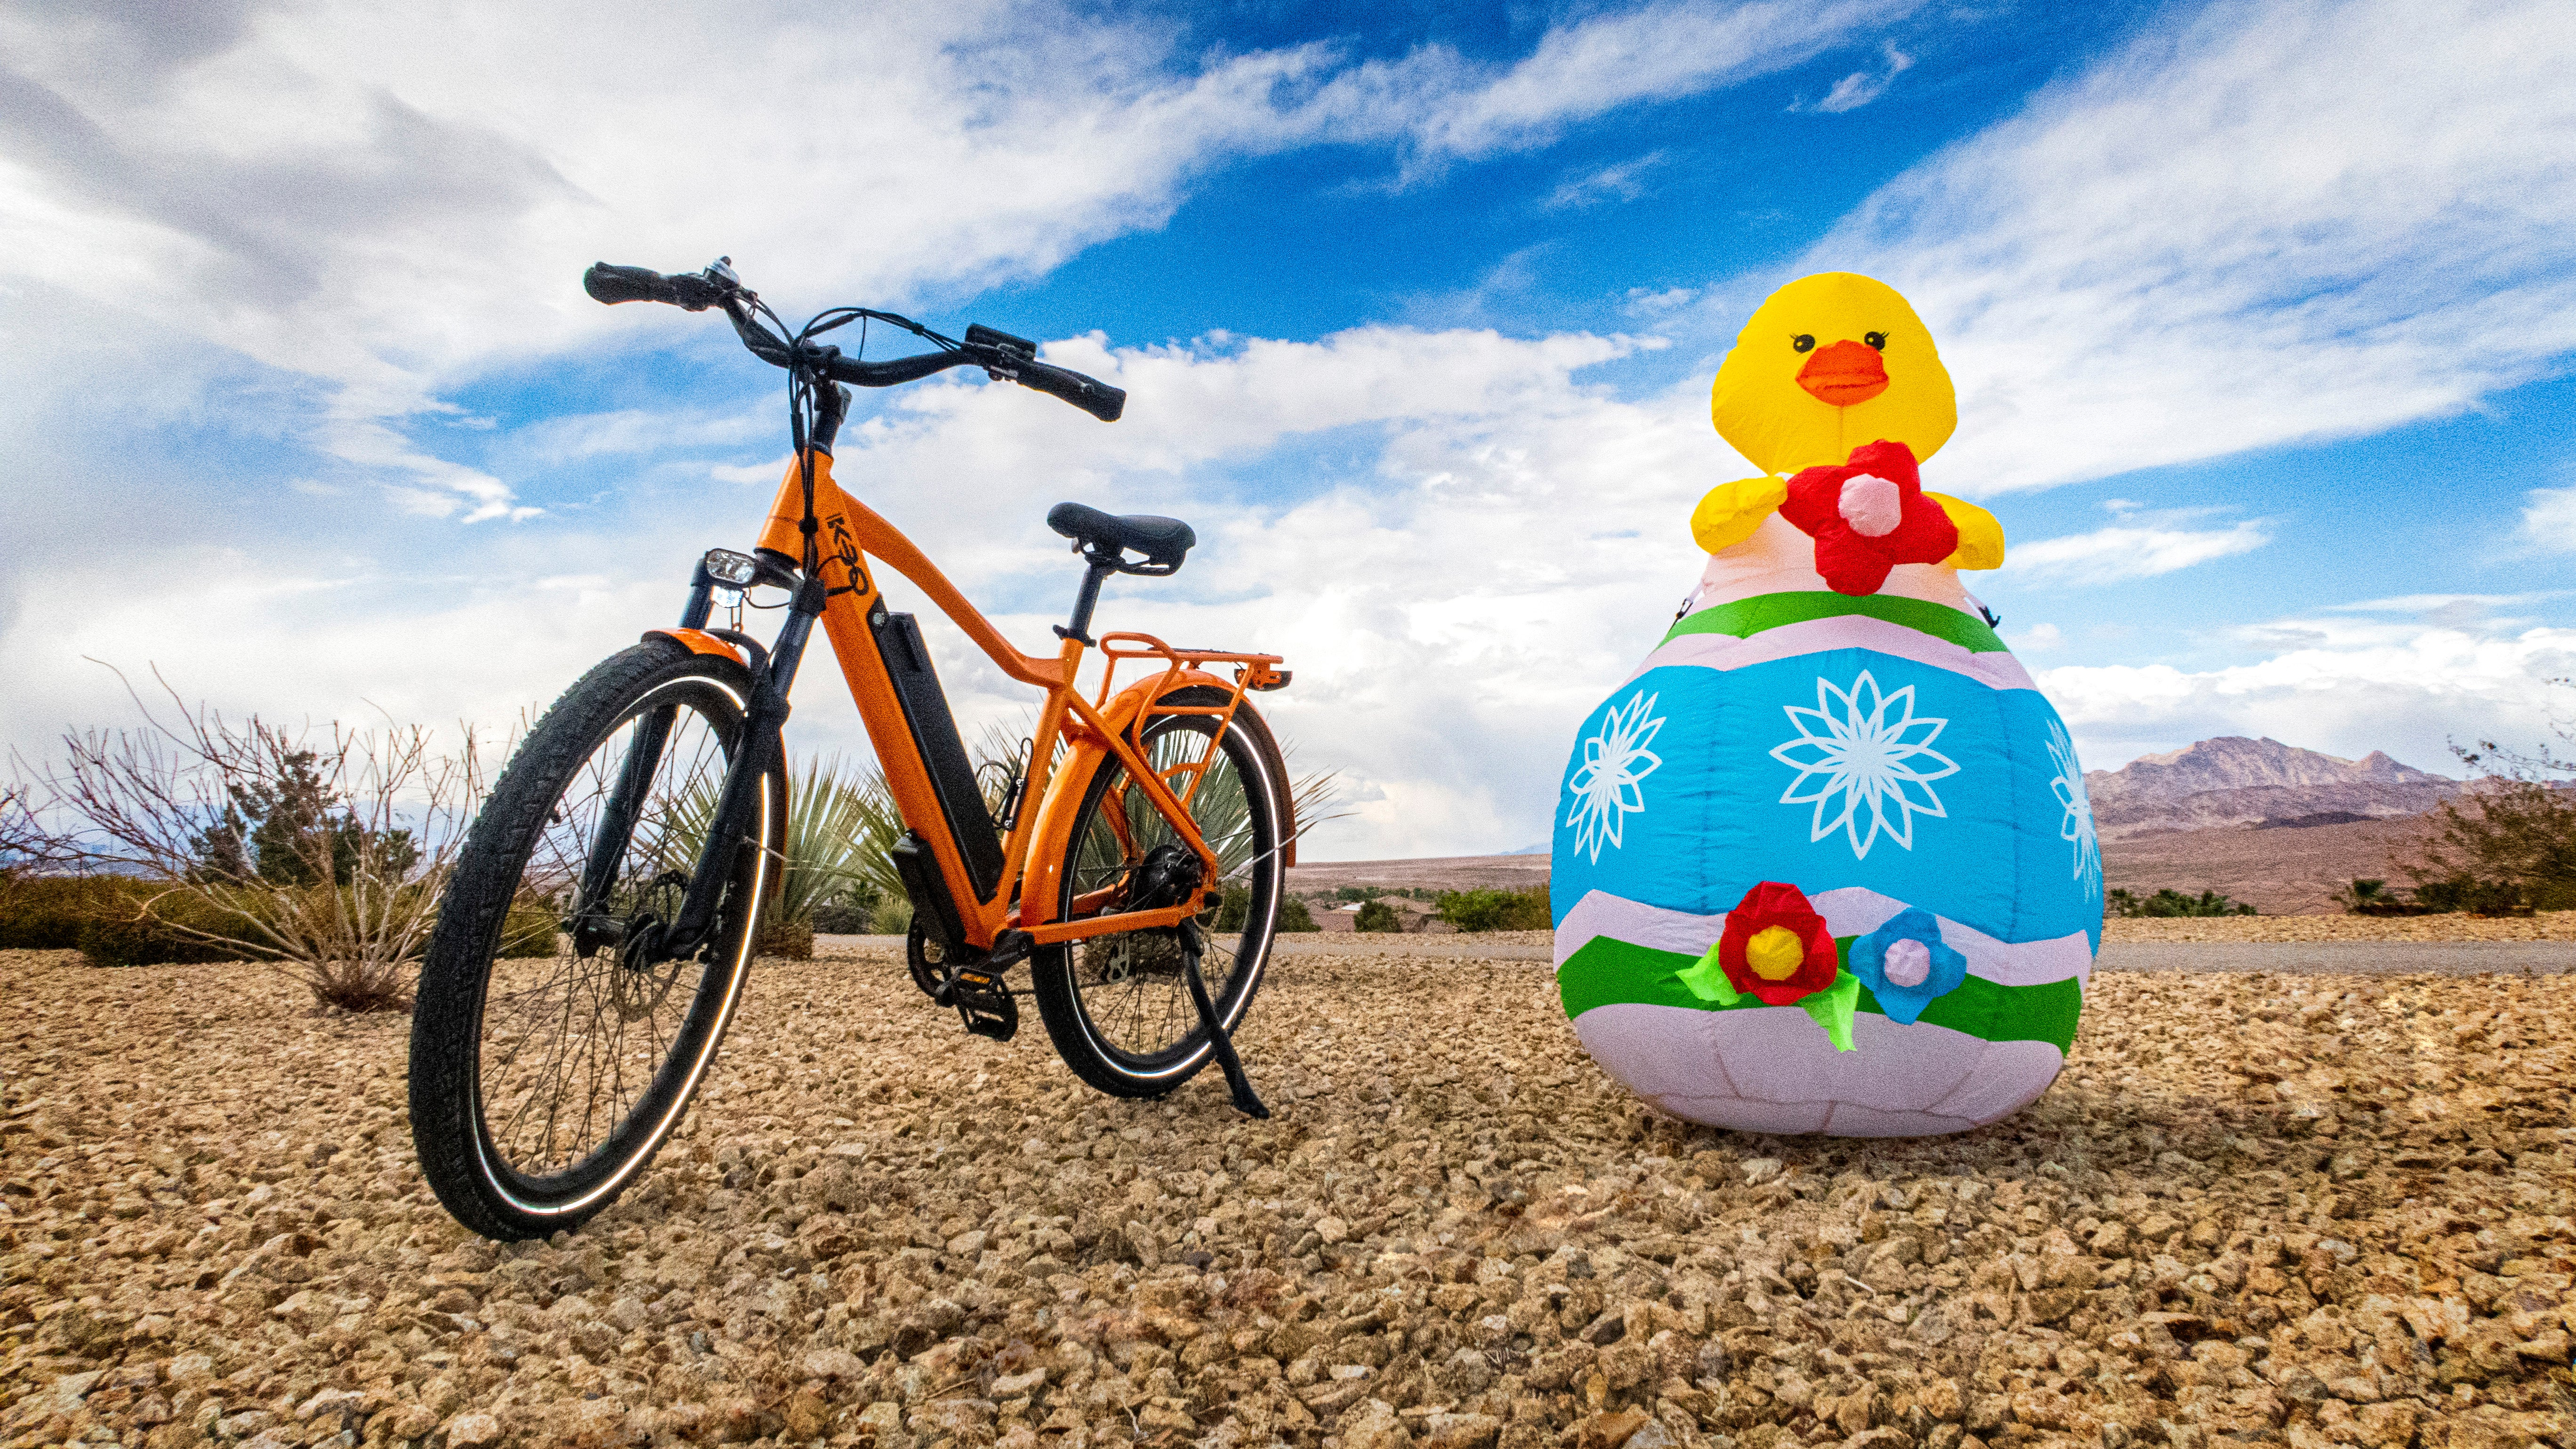 How To Celebrate Easter With a Family Biking Adventure